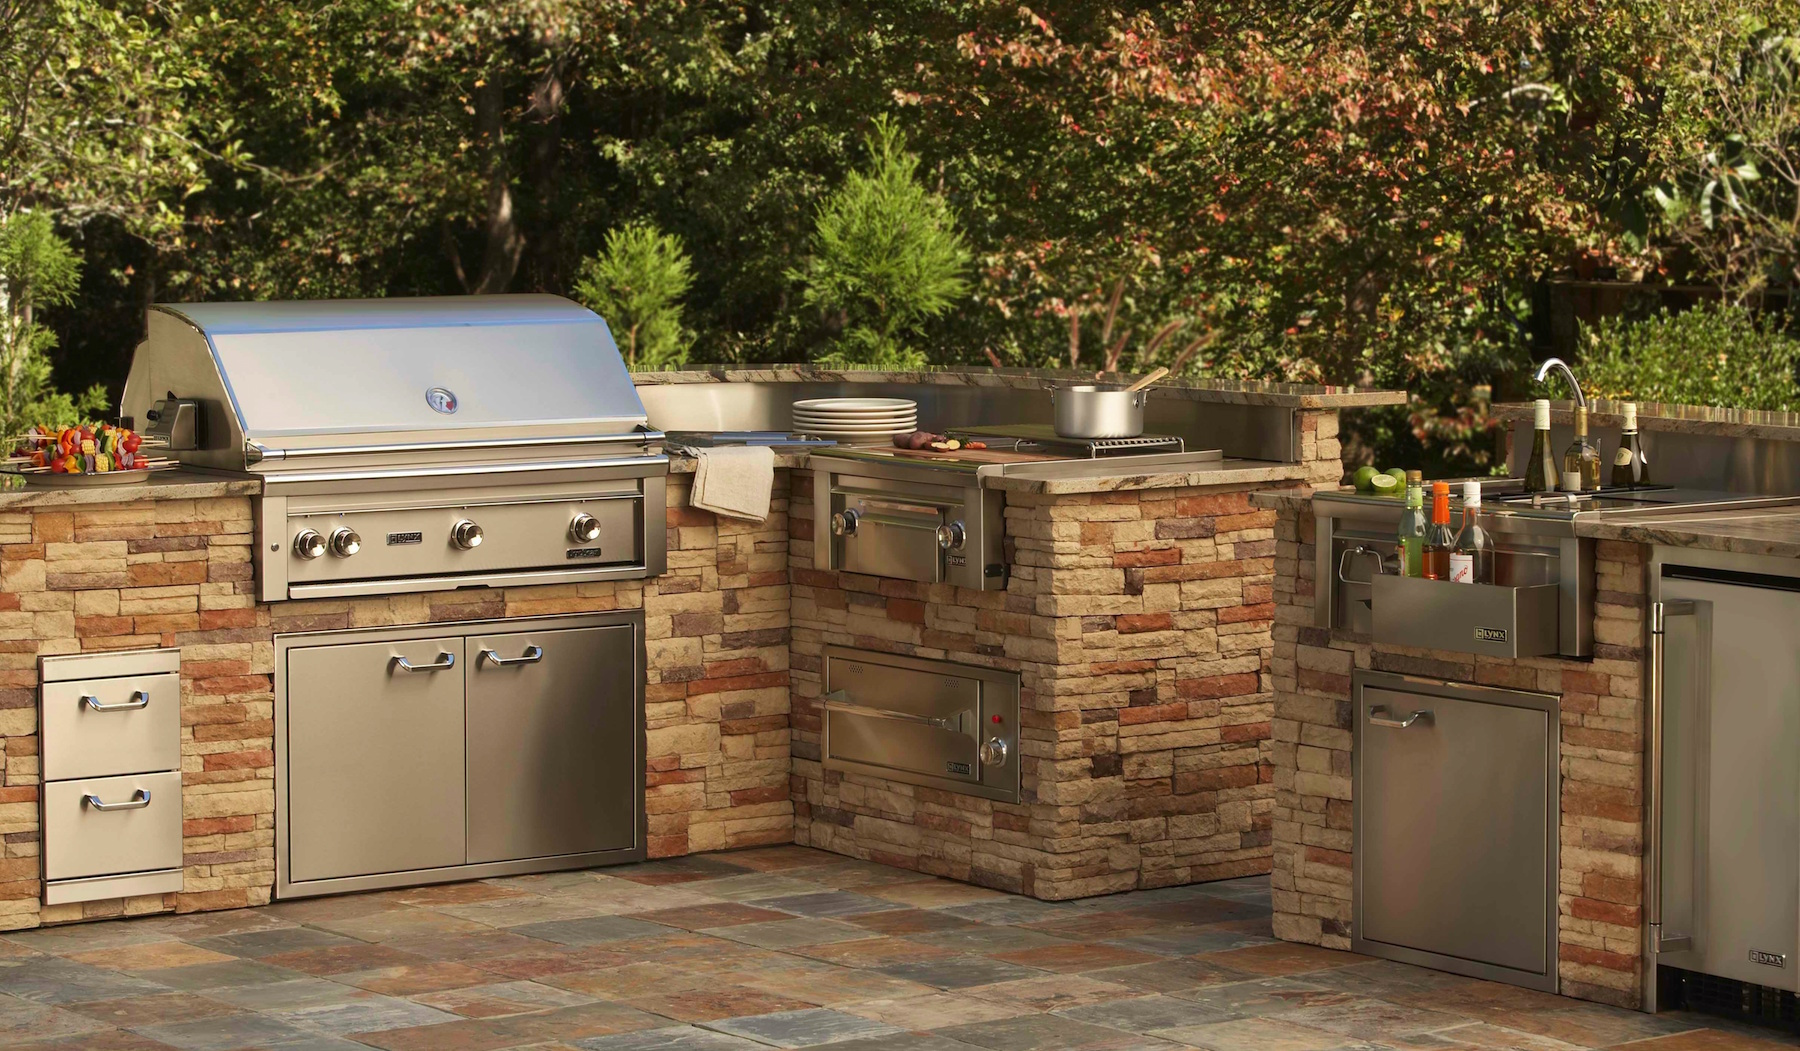 Lynx Professional Built In Barbecue Grills   Outdoor Kitchens Of Southwest  Florida Part 62